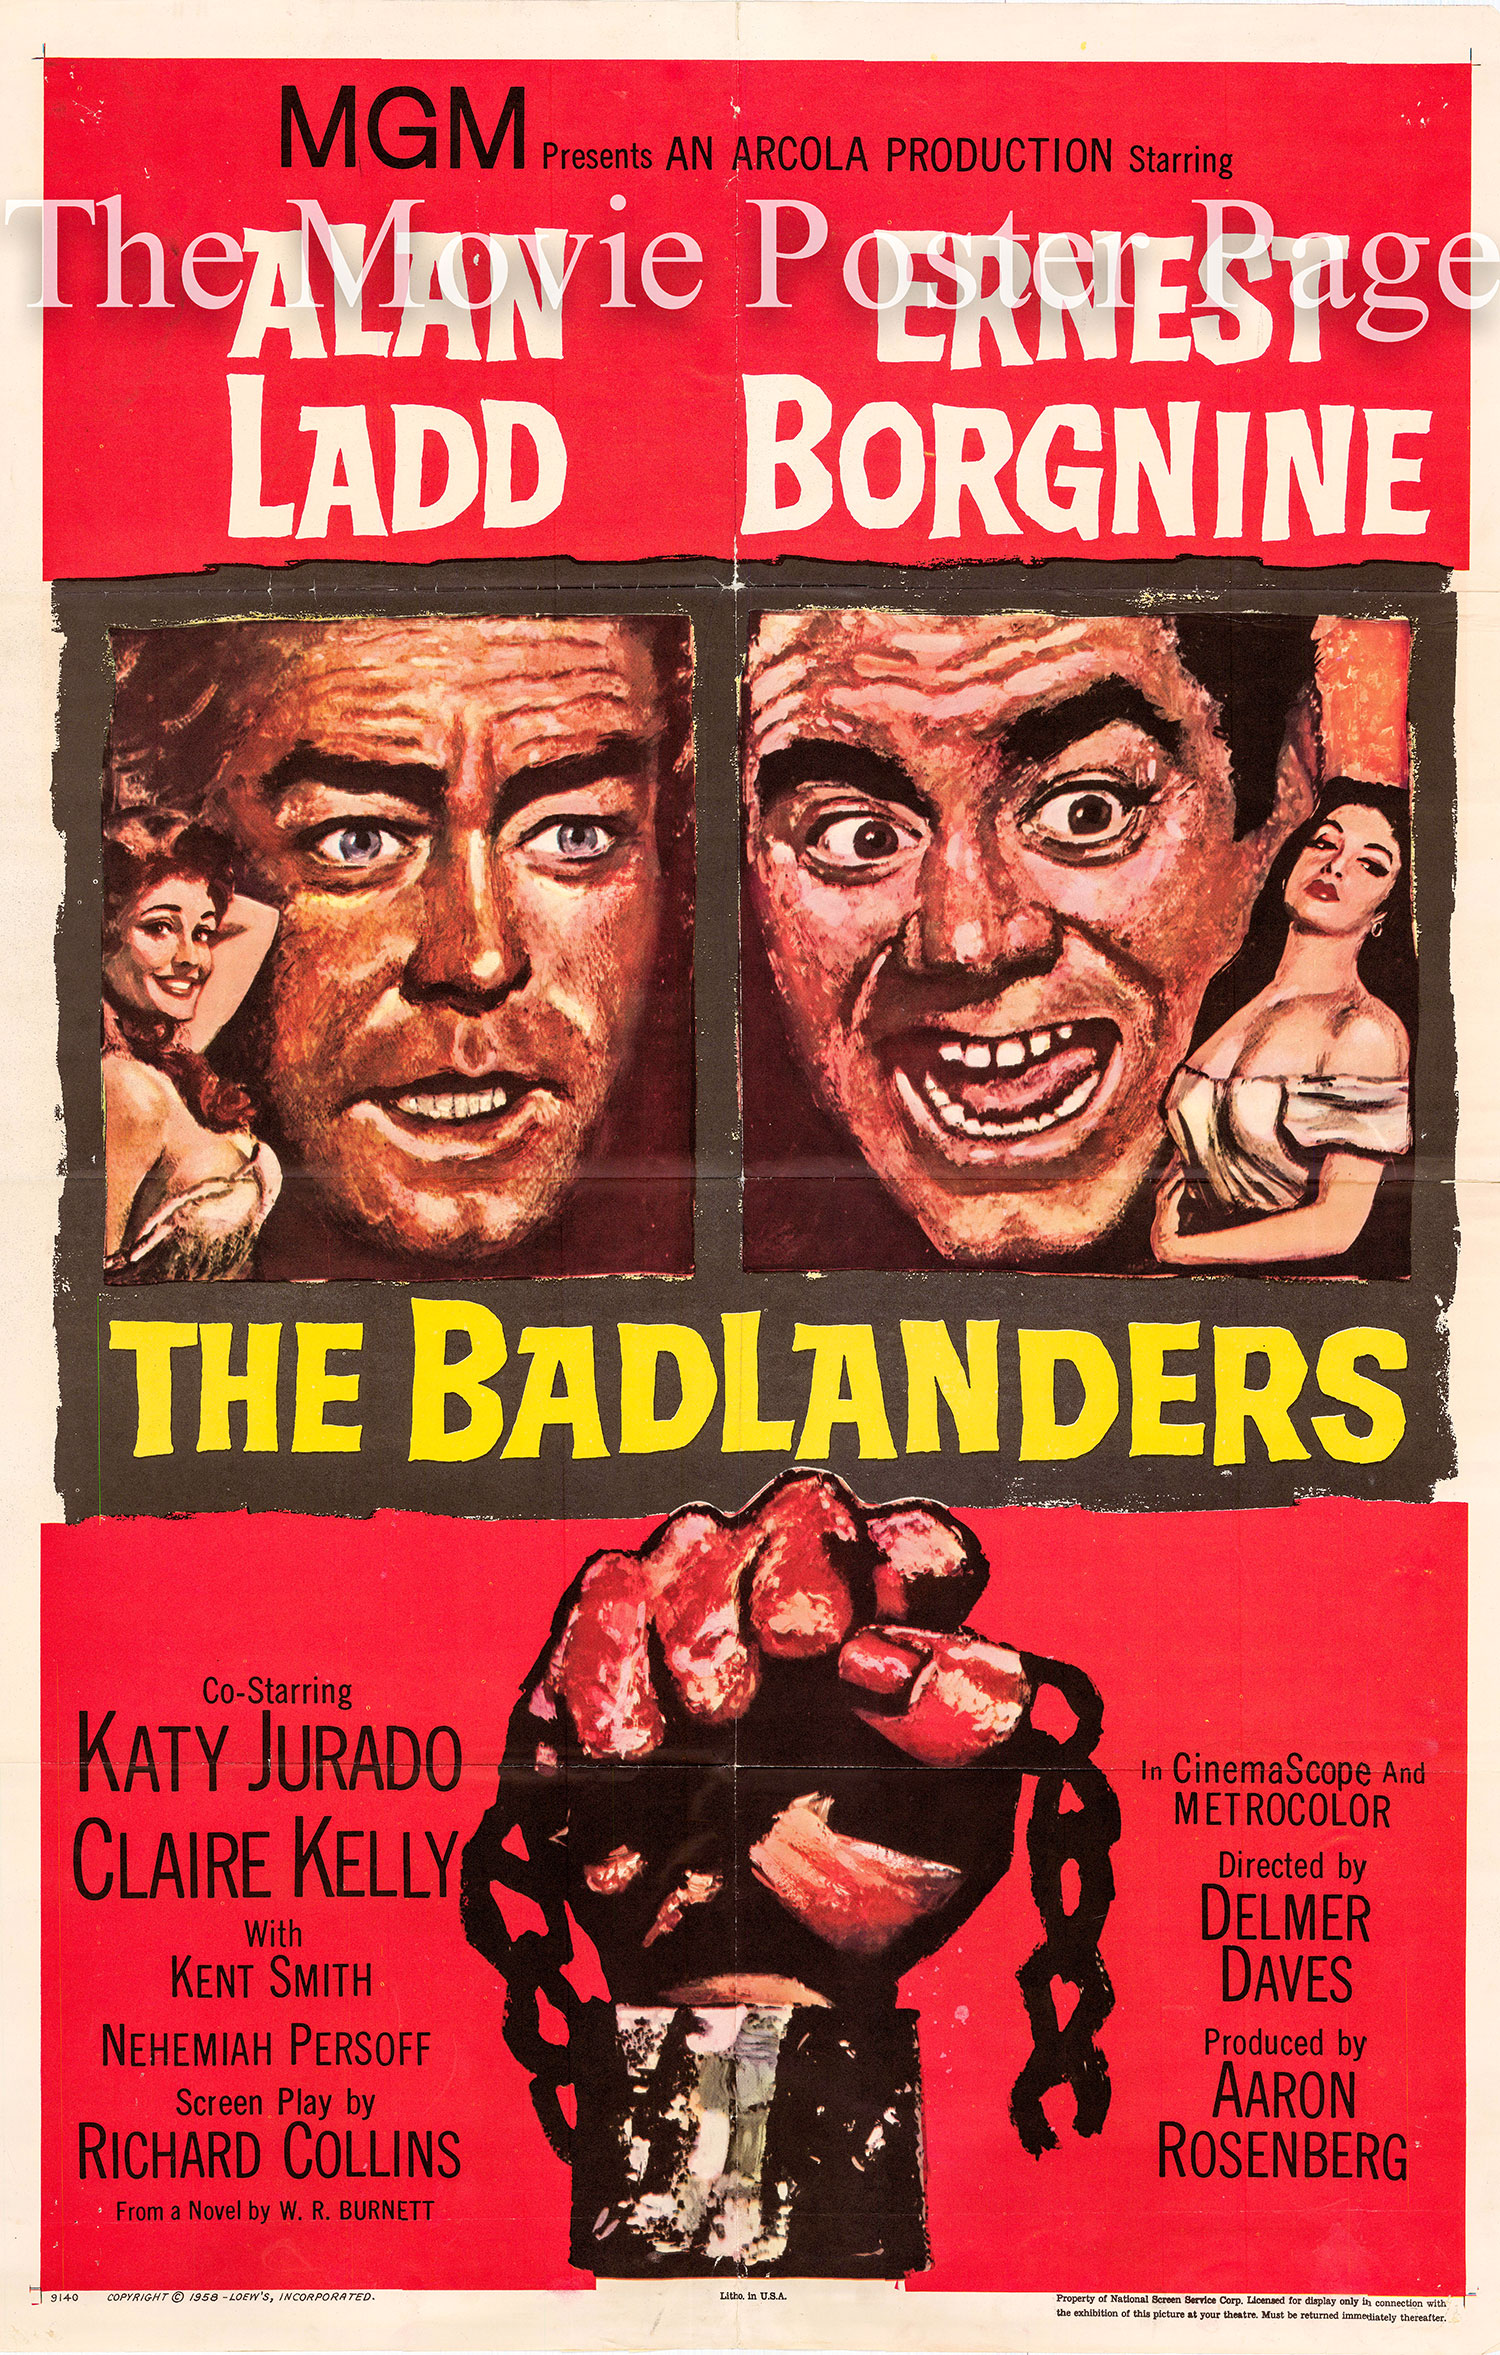 Pictured is a US one-sheet poster for the 1958 Delmer Daves film The Badlanders starring Ernest Borgnine.